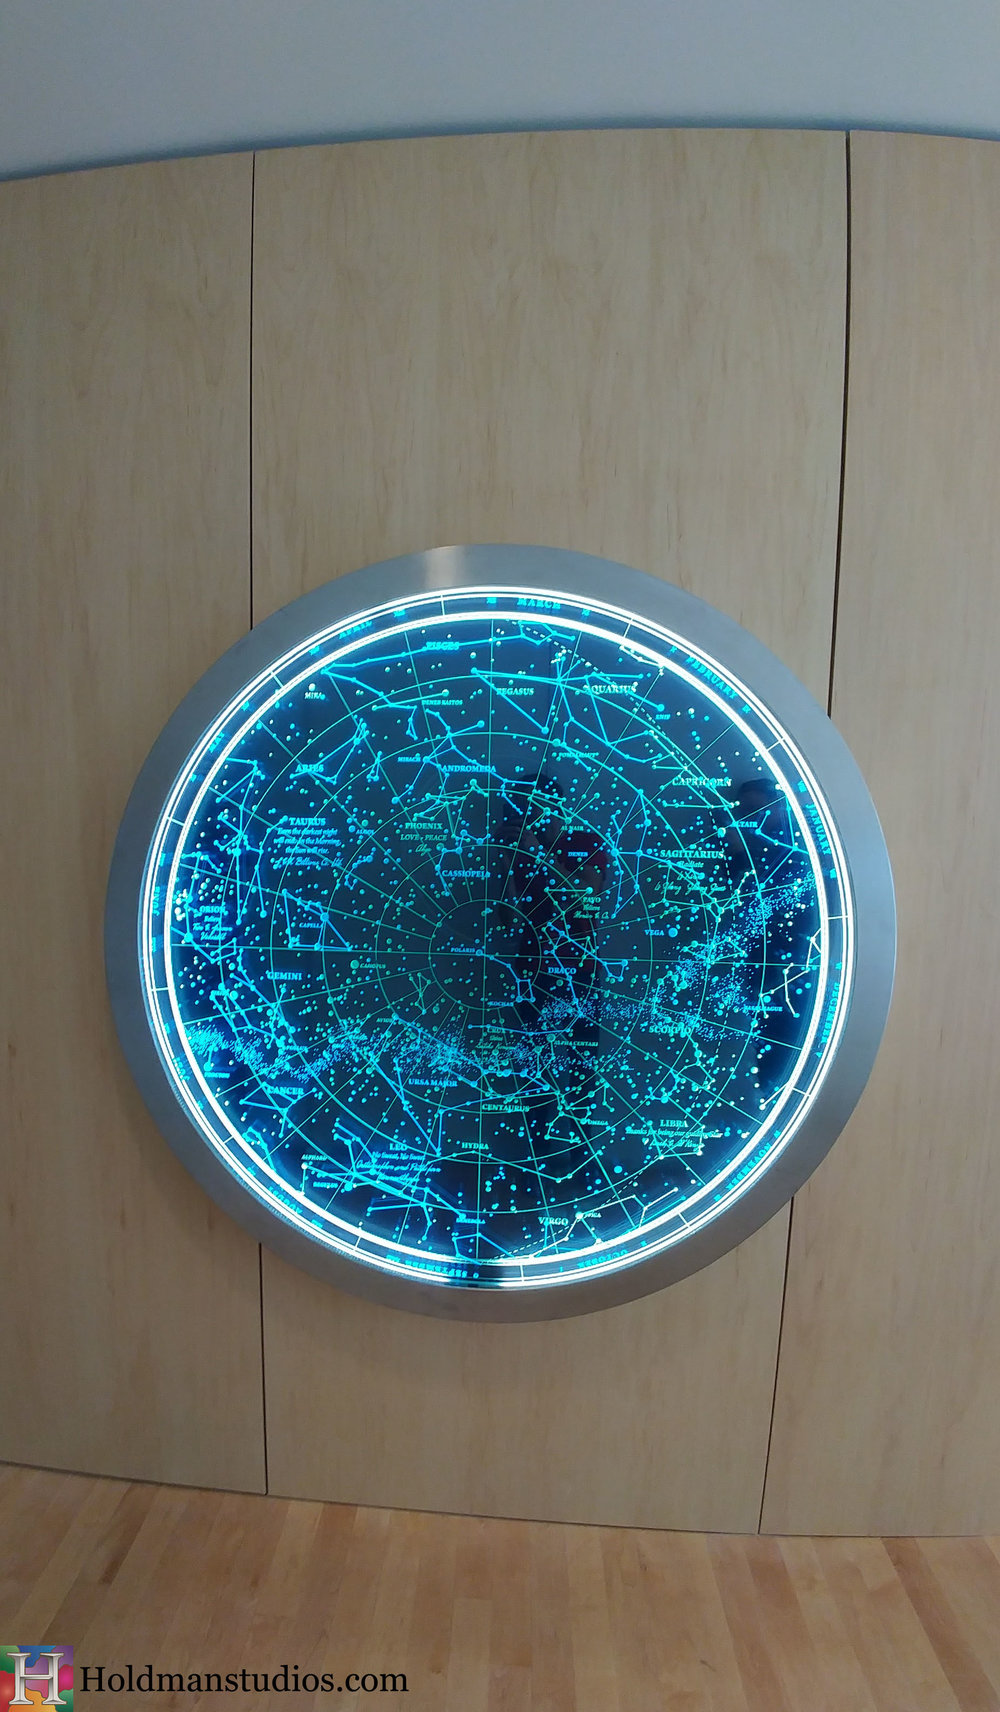 Holdman-studios-etched-glass-new-skin-constalation-window-led-programed-lights.jpg